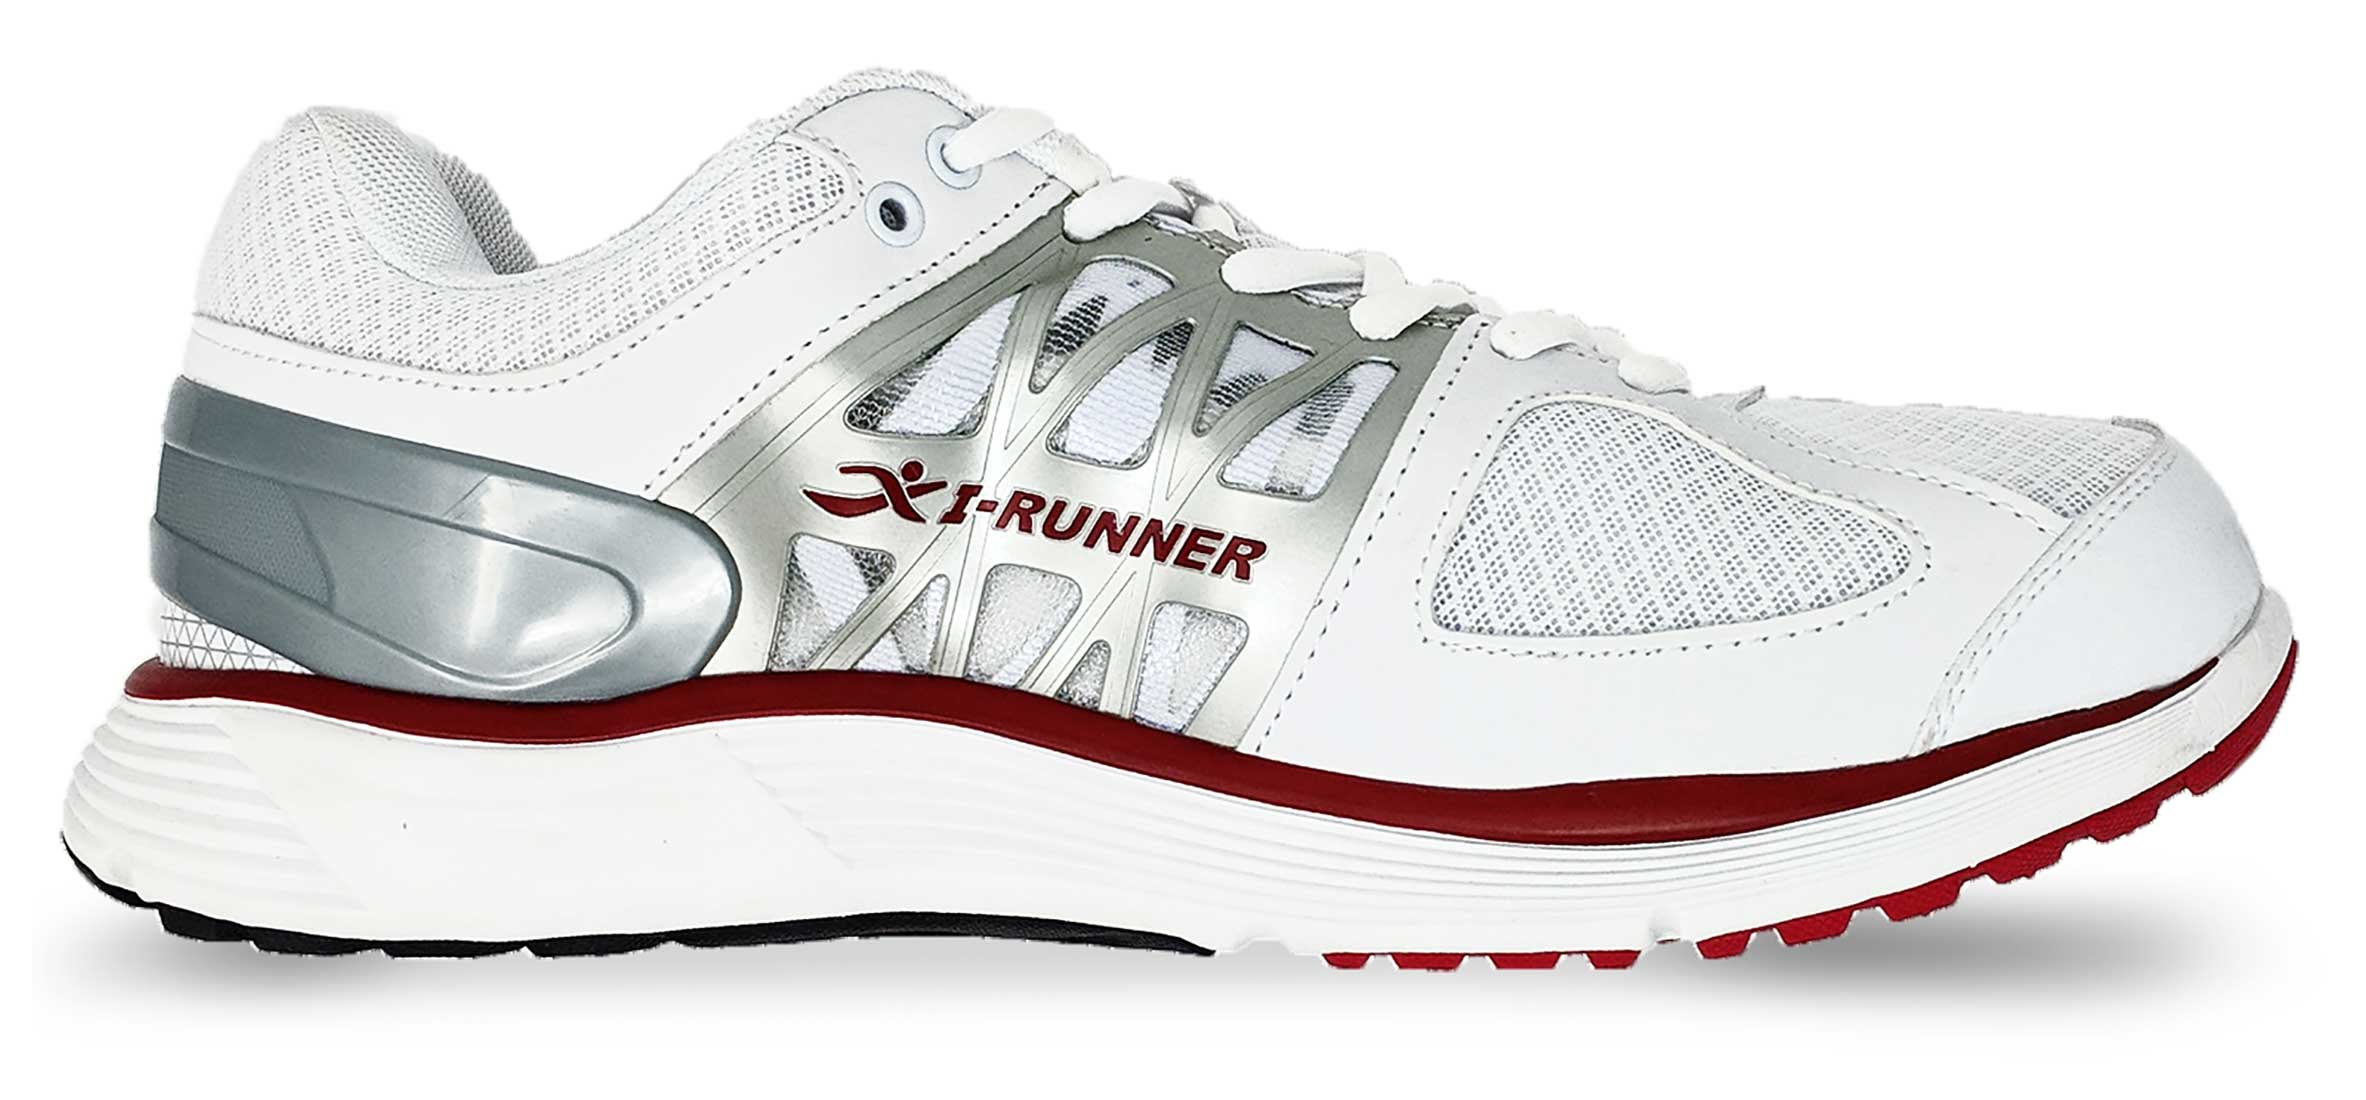 I-RUNNER Lincoln - Athletic Walking Shoe